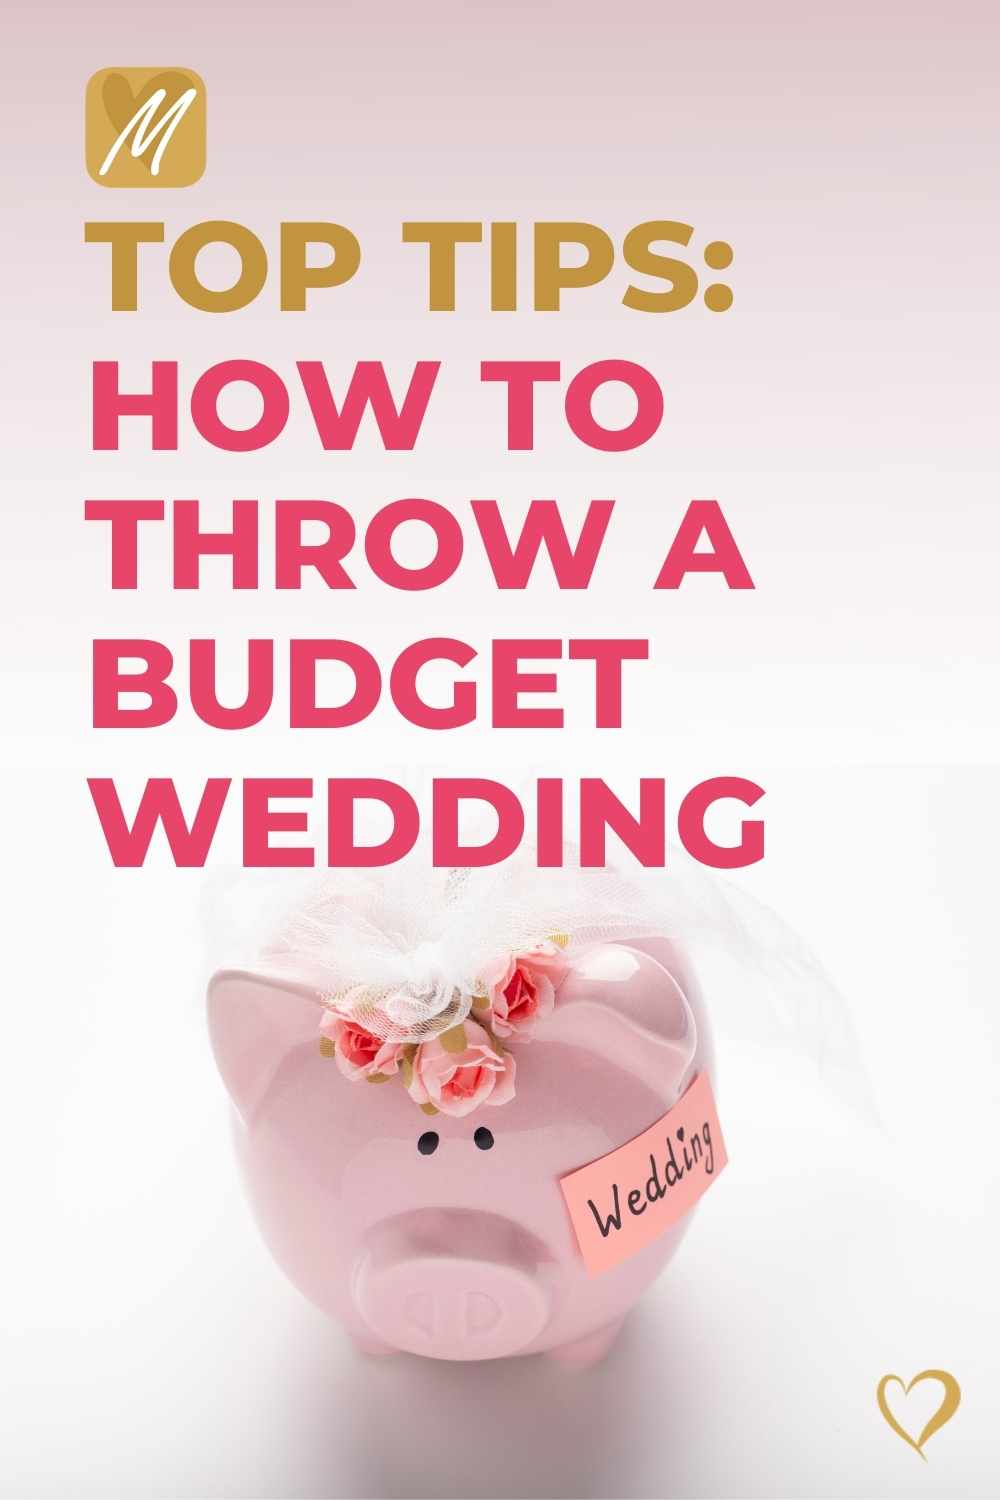 6 Top Tips | How to throw a budget wedding